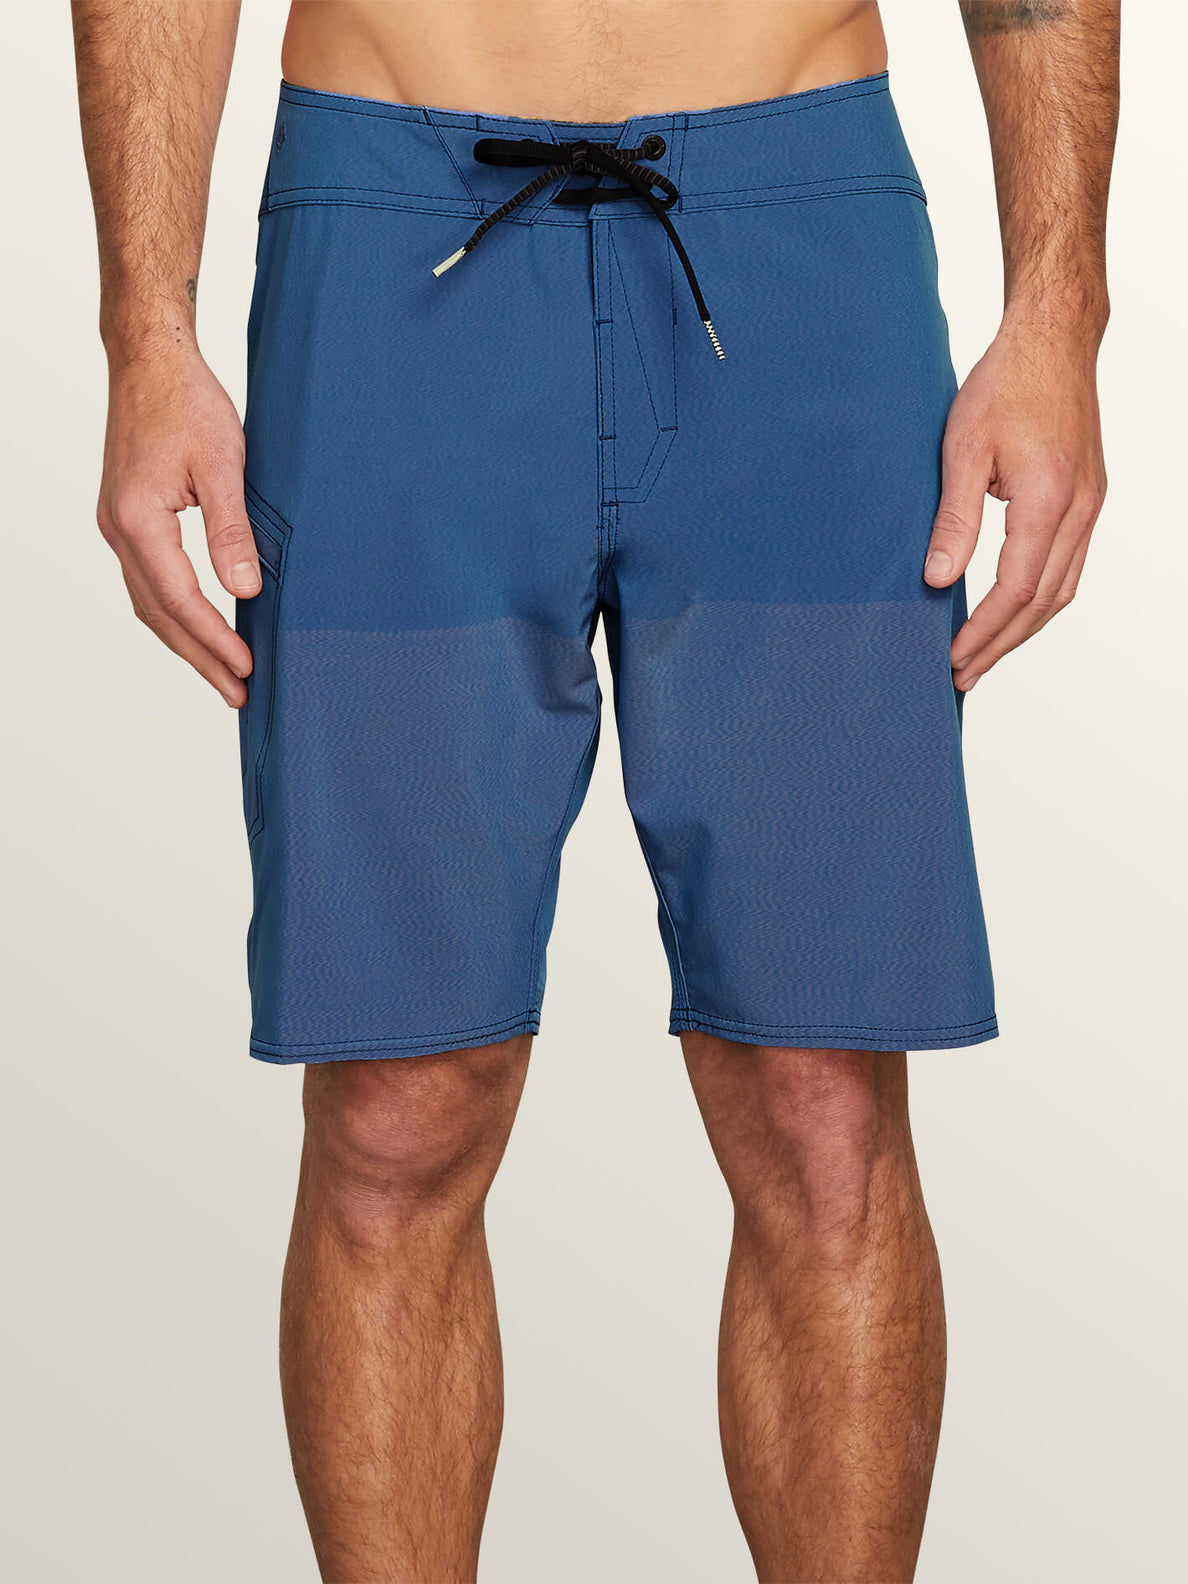 Lido Heather Mod Boardshorts In Jasper Blue, Front View